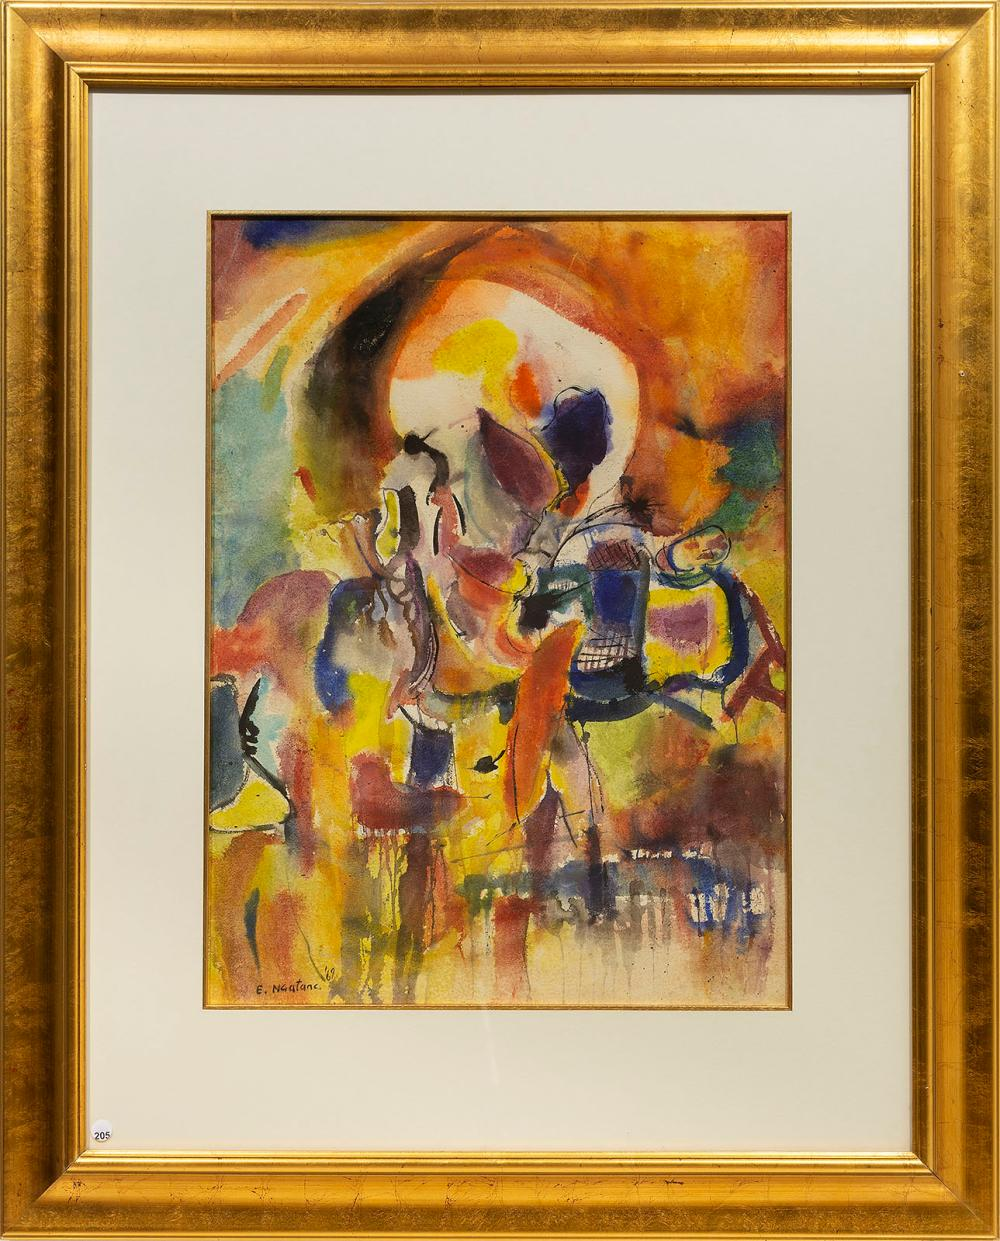 Ephraim Ngatane (SA 1938 - 1971) Mixed Media, Abstract, Signed & Dated '69, 74 x 55